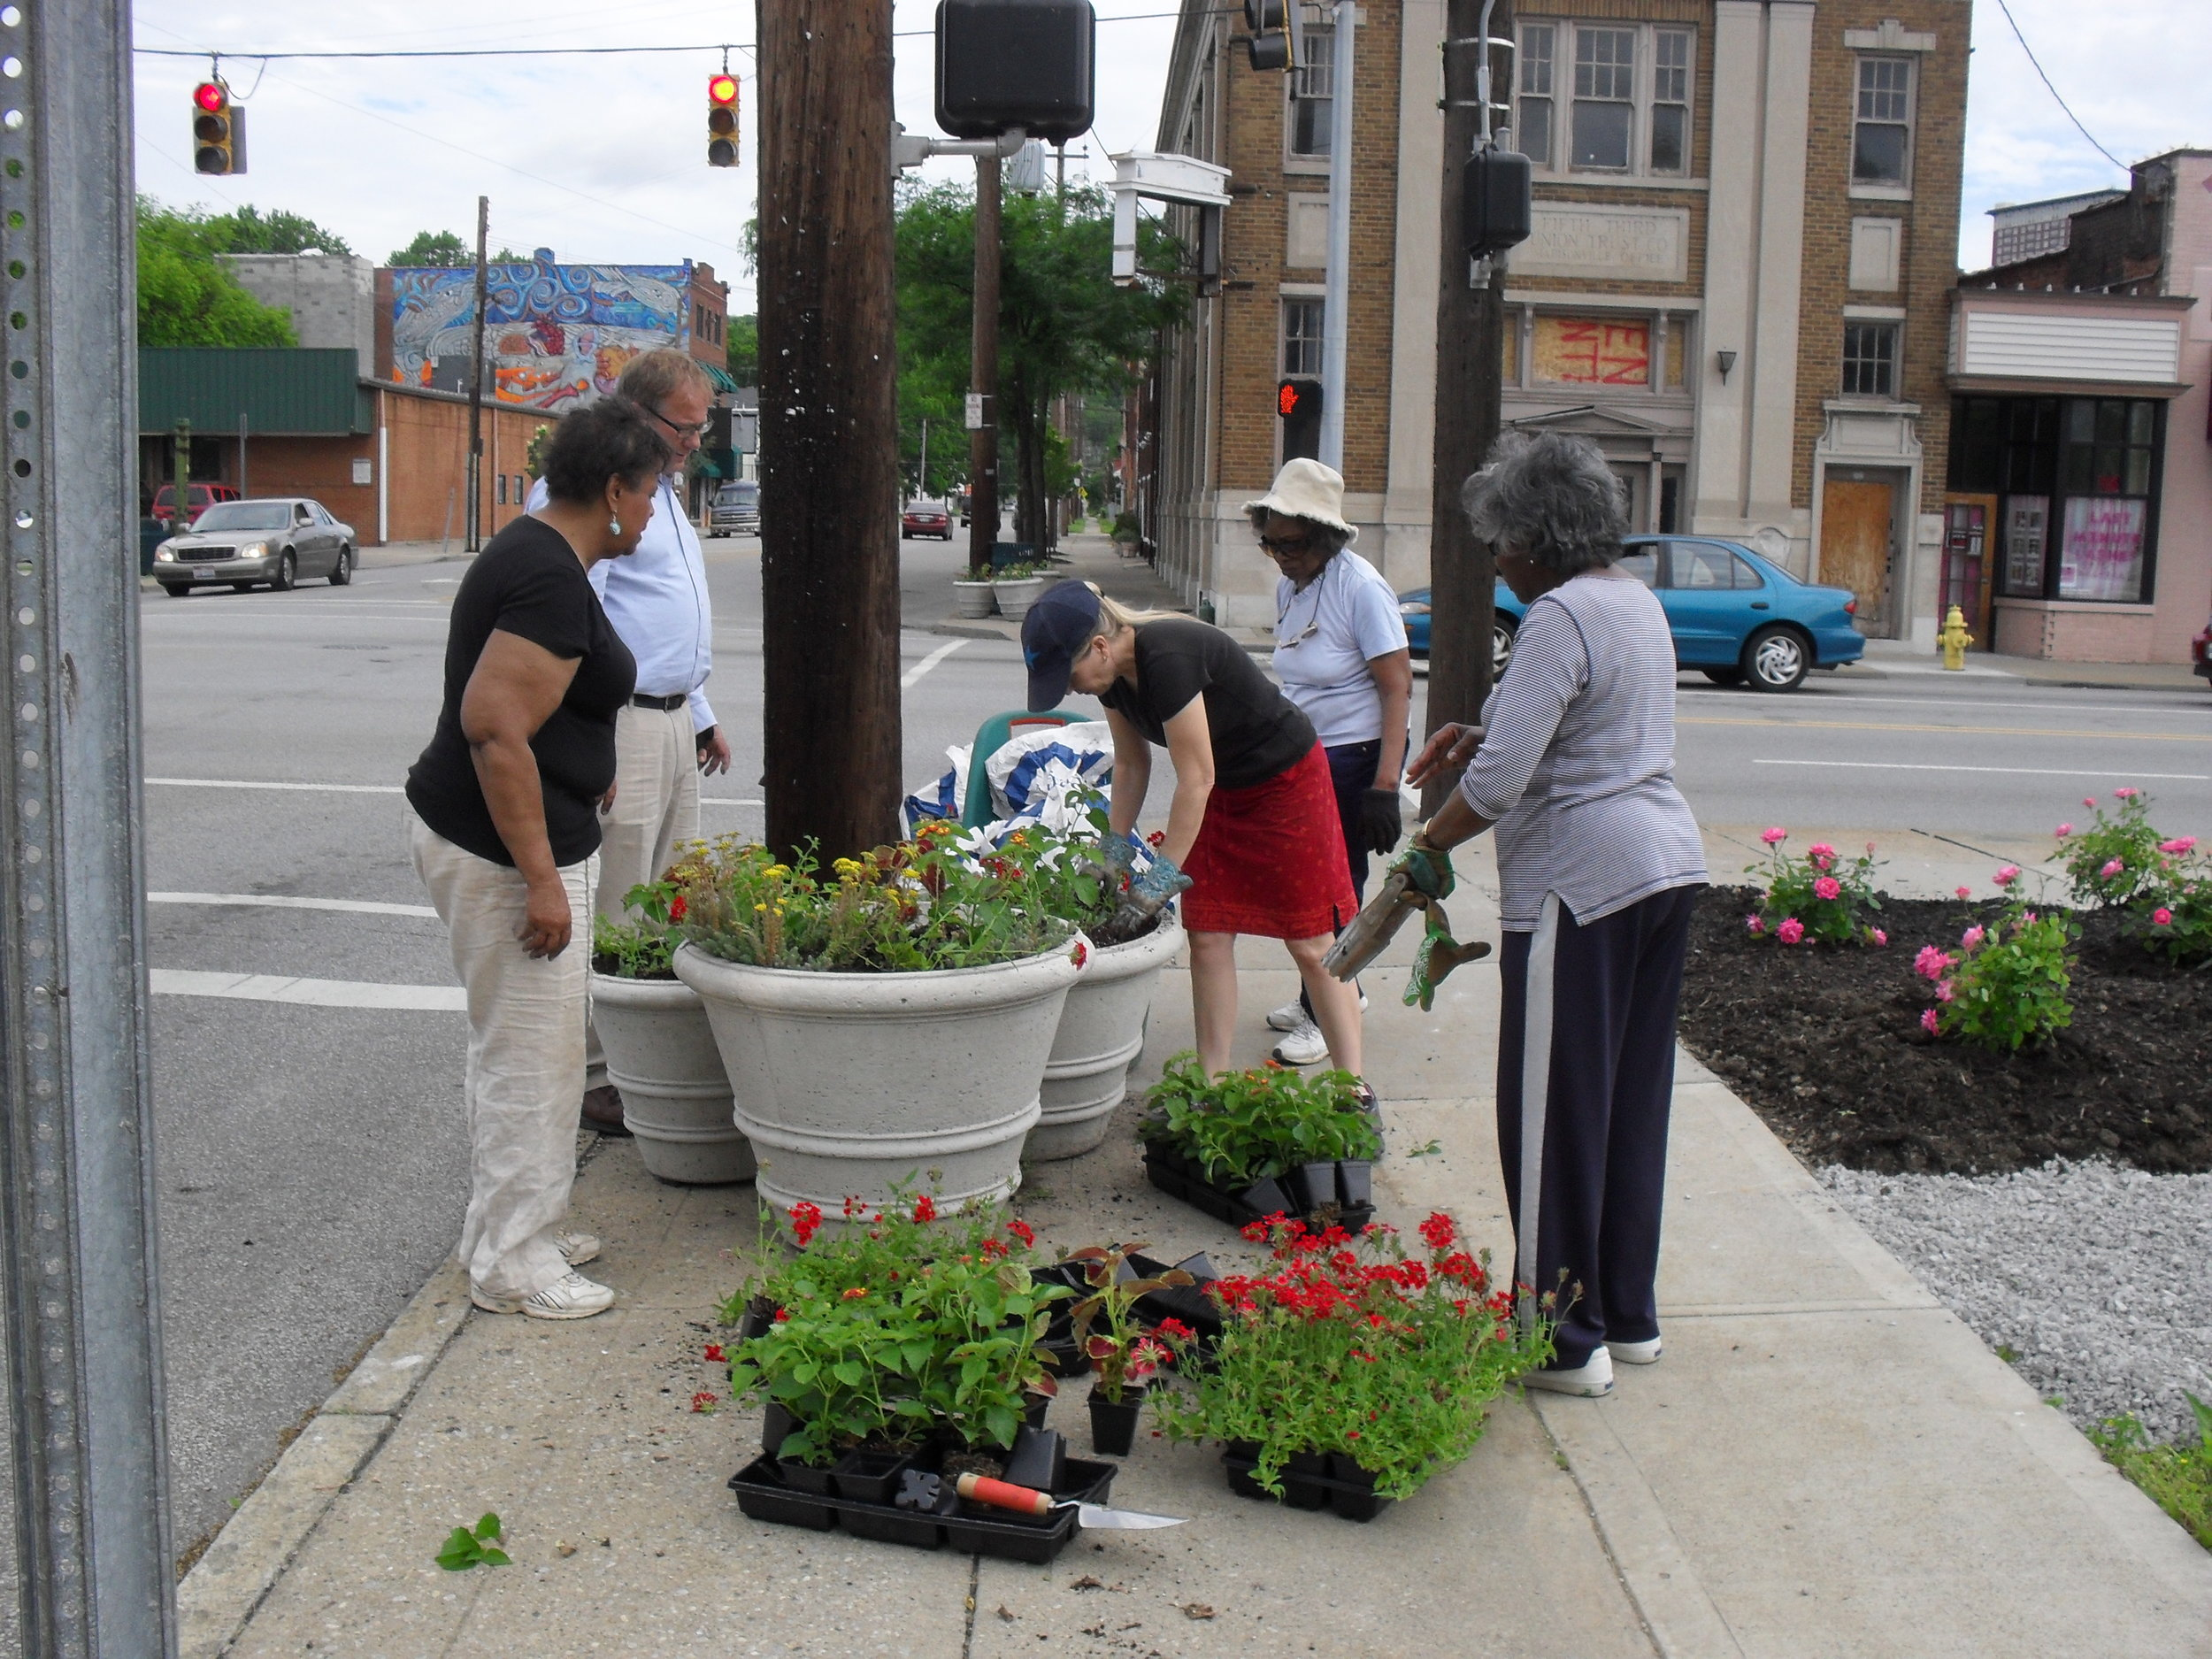 MCC Beautification Committee planting street planters 5-22-2013.JPG